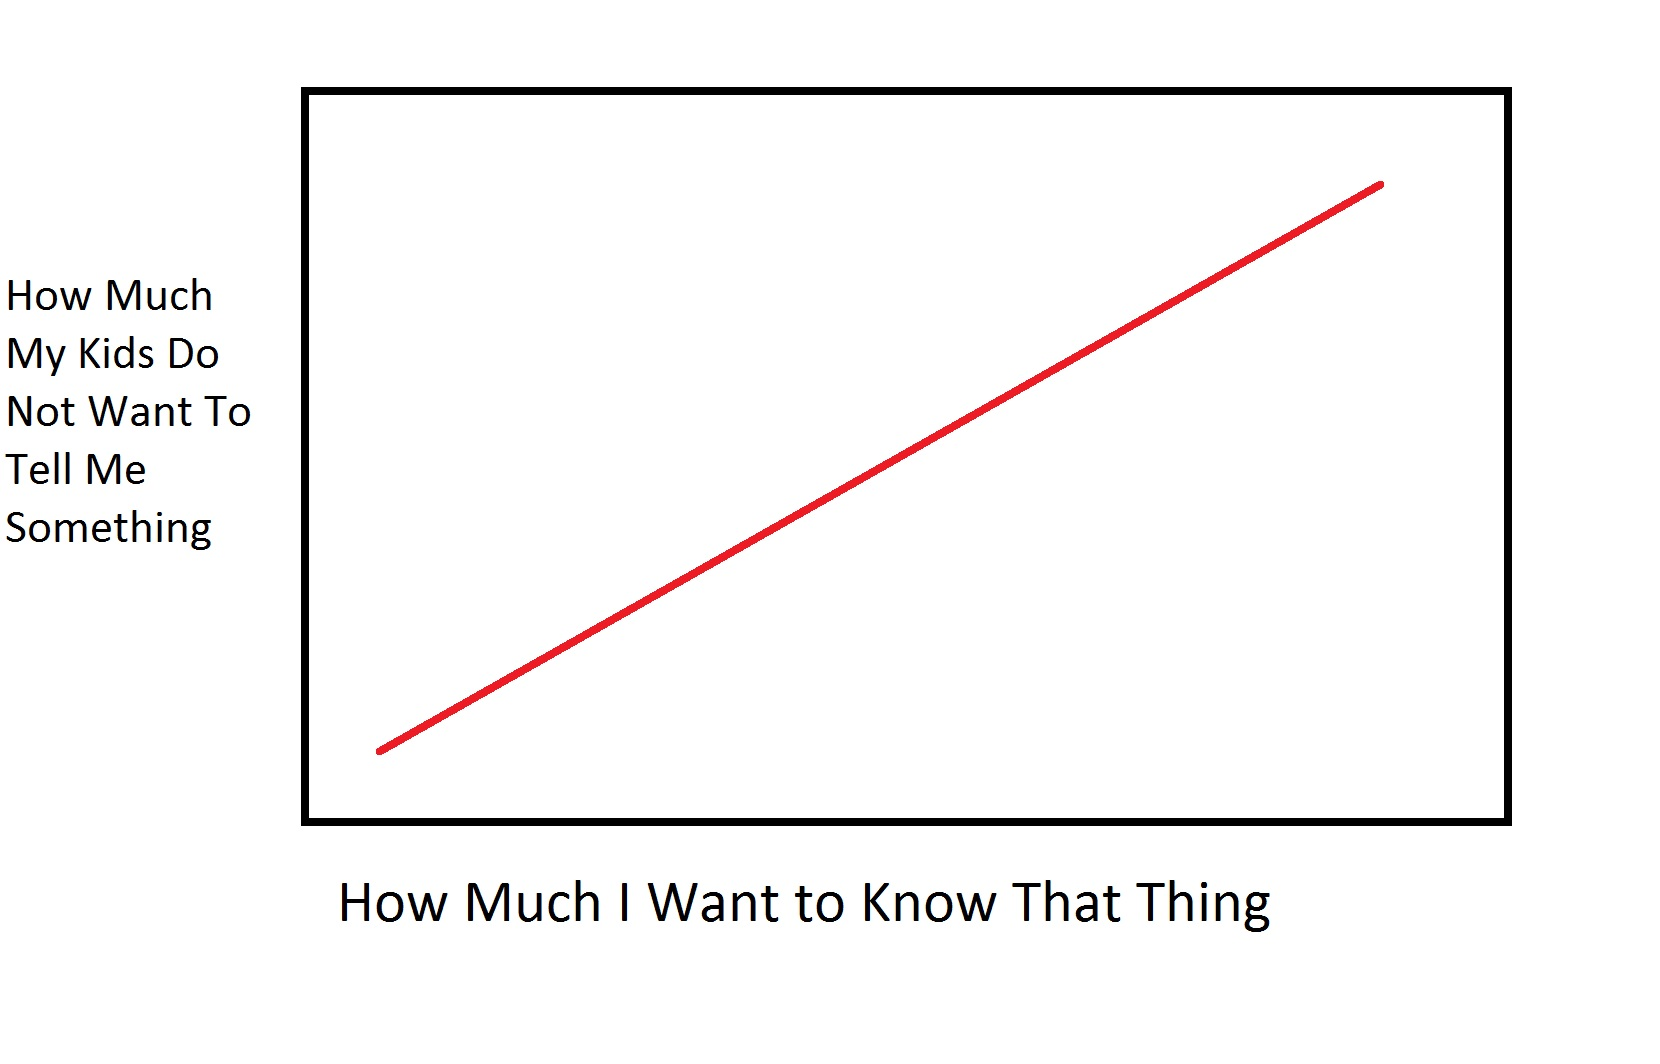 Things I want to Know